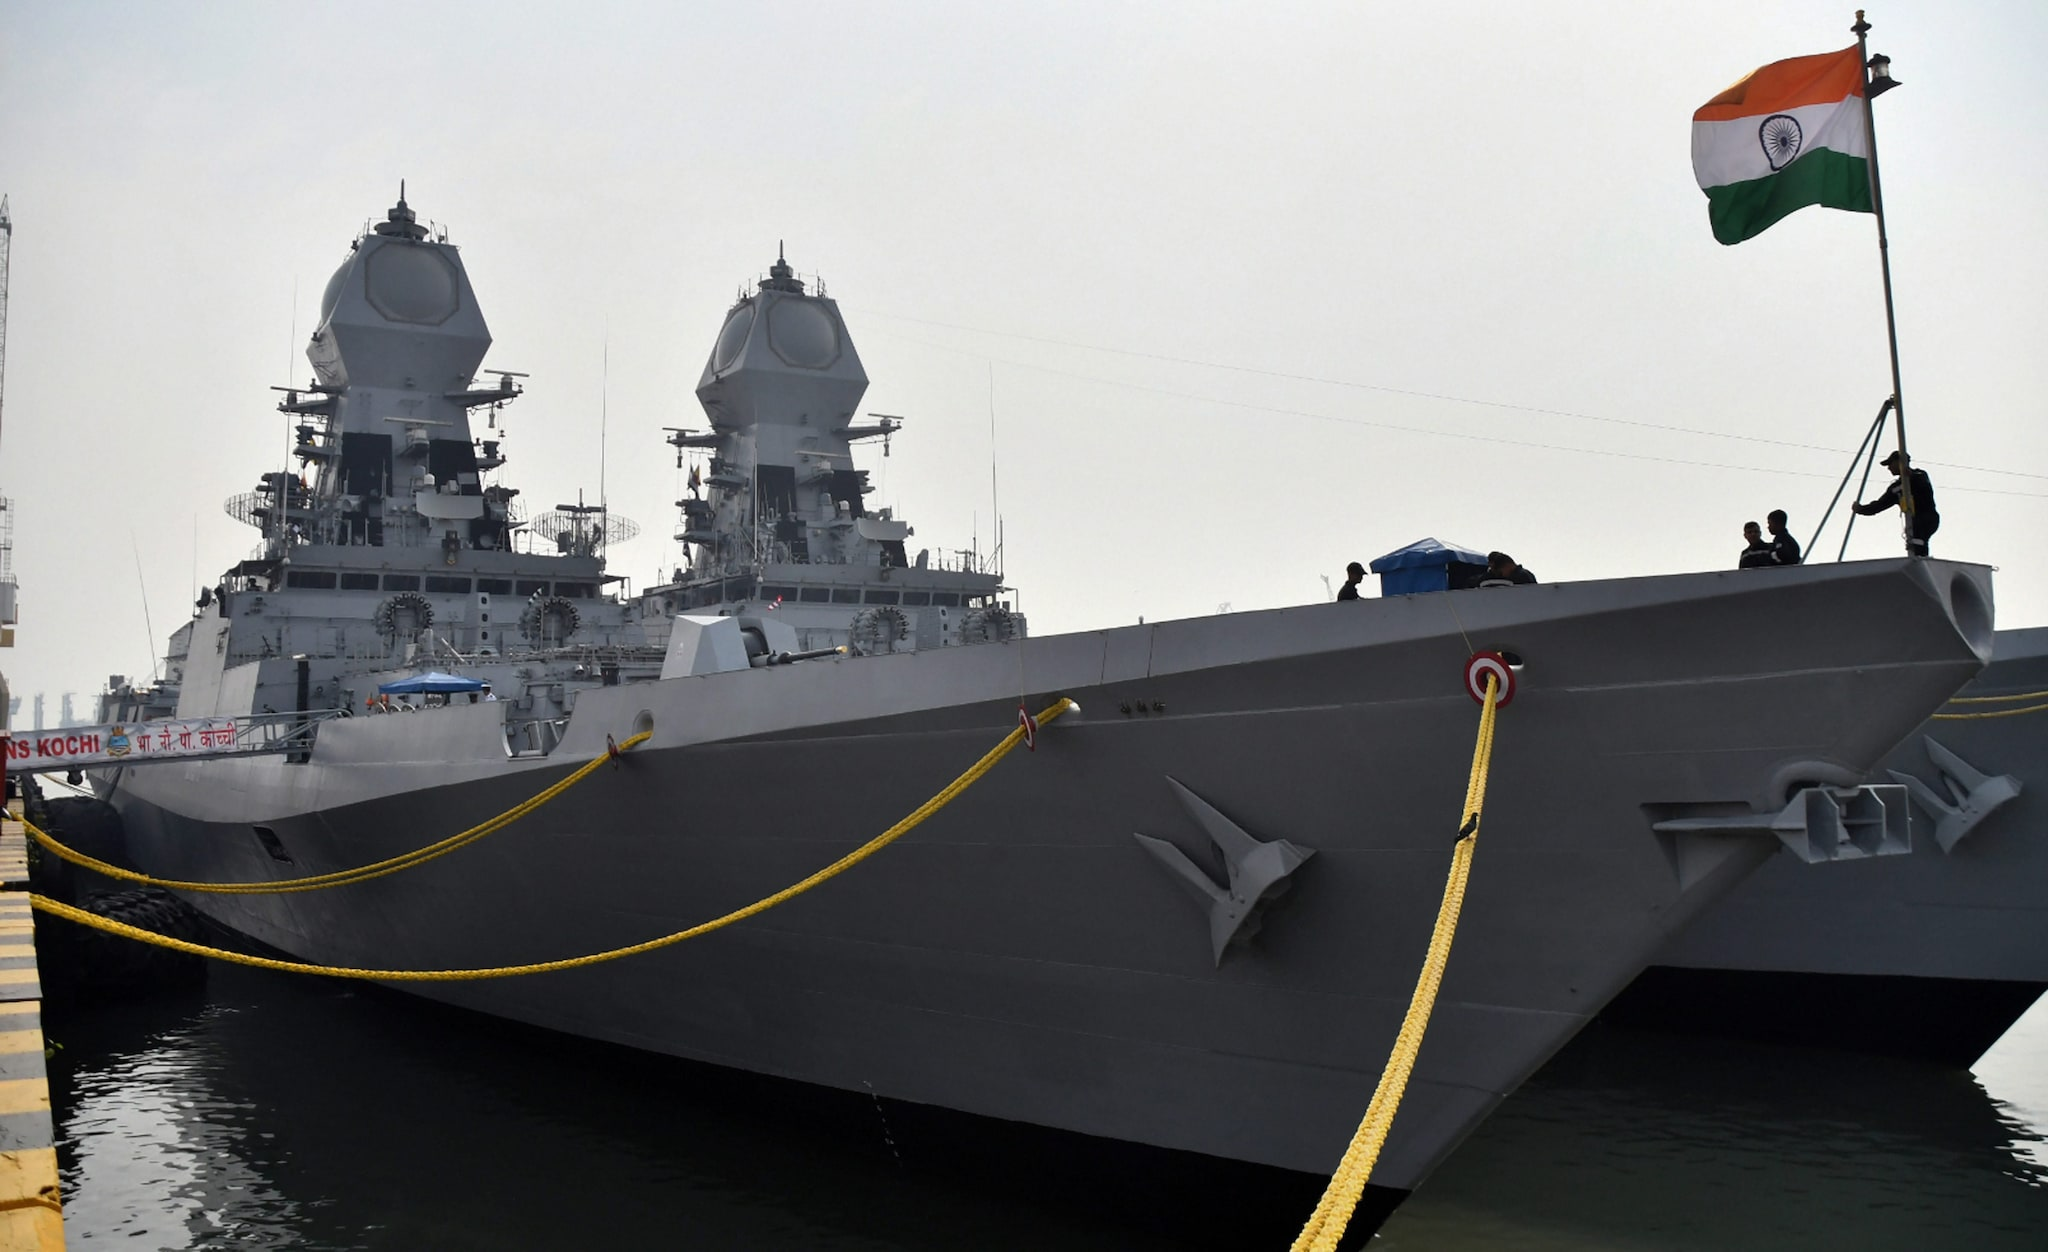 INS Kochi is seen at Mumbai harbour ahead of the Navy day celebration, in Mumbai, Monday, December 03, 2018. (PTI Photo)